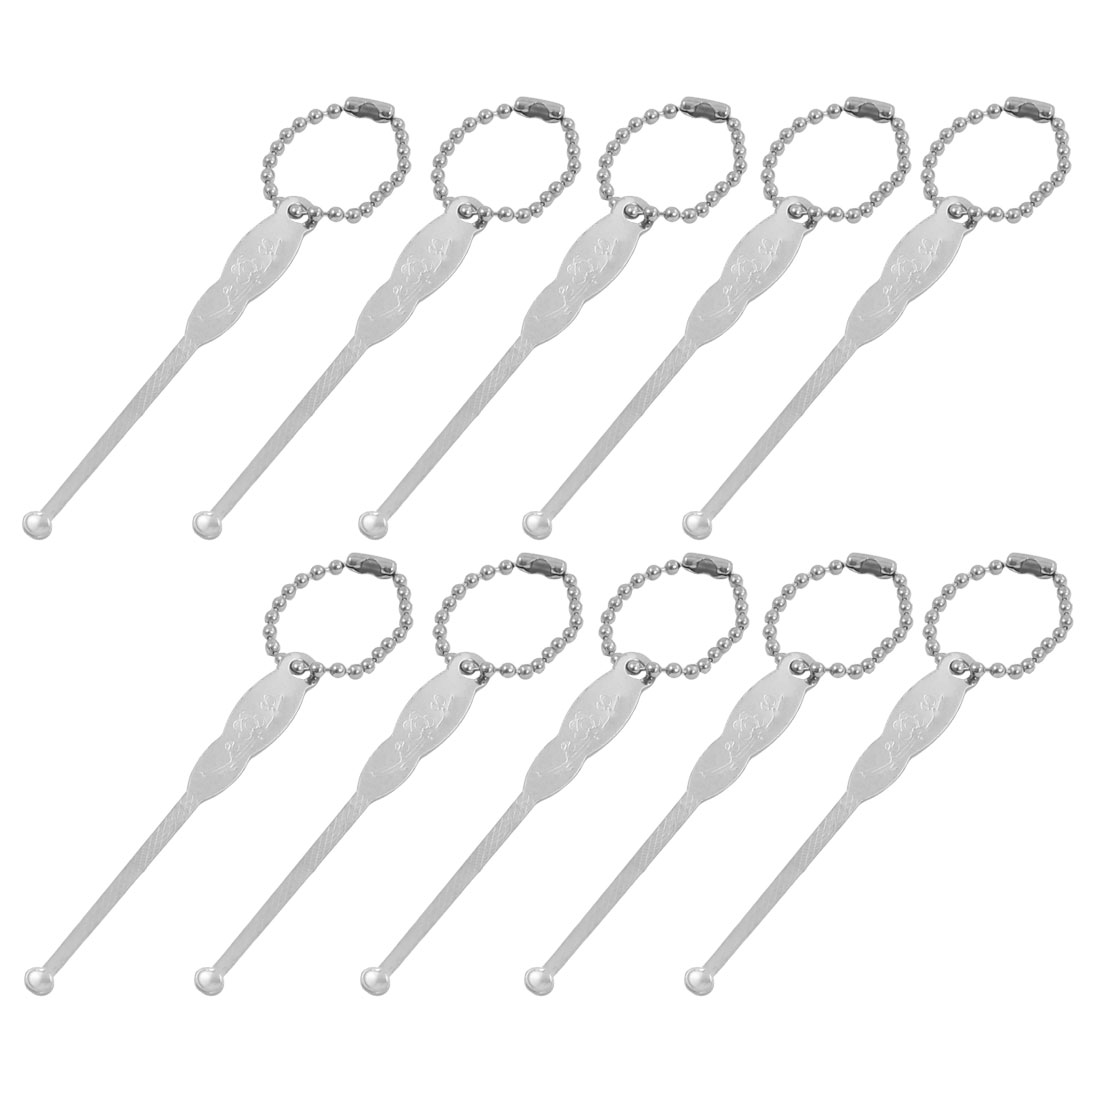 10 Pcs Flower Print Beads Metal Earpicks Removal Cleaner Tool